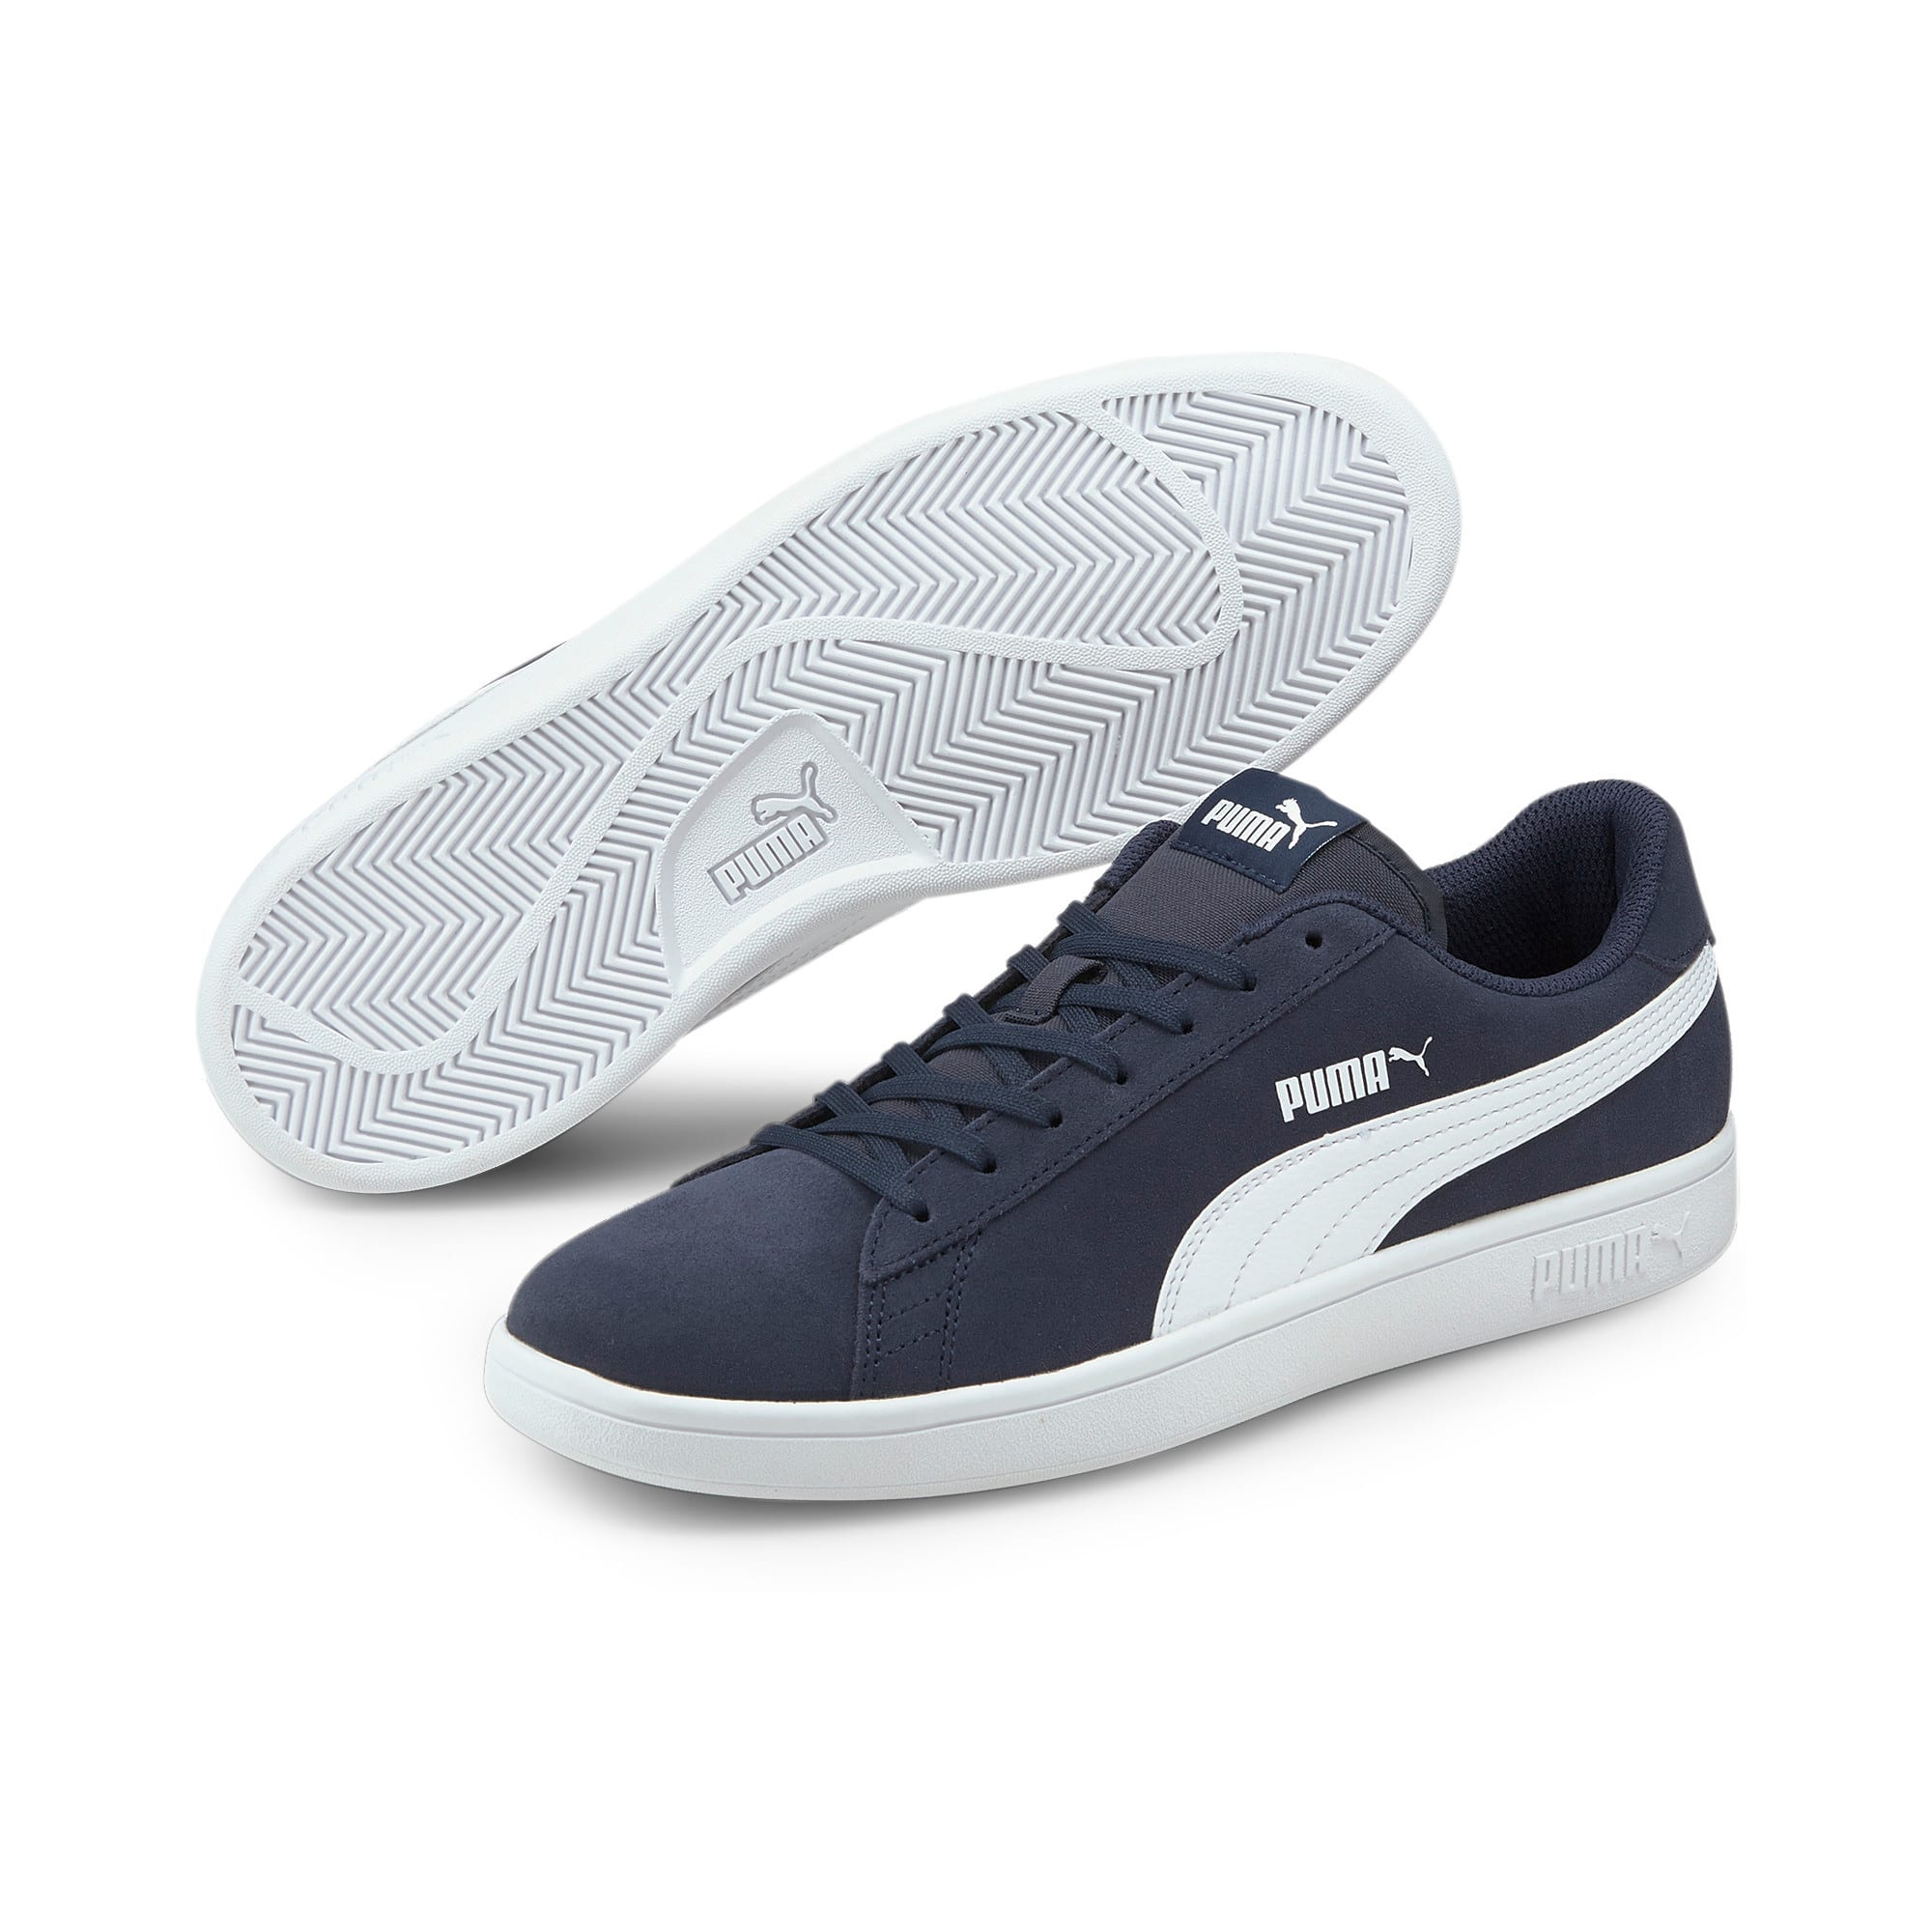 Thumbnail 2 of Smash v2 Trainers, Peacoat-Puma White, medium